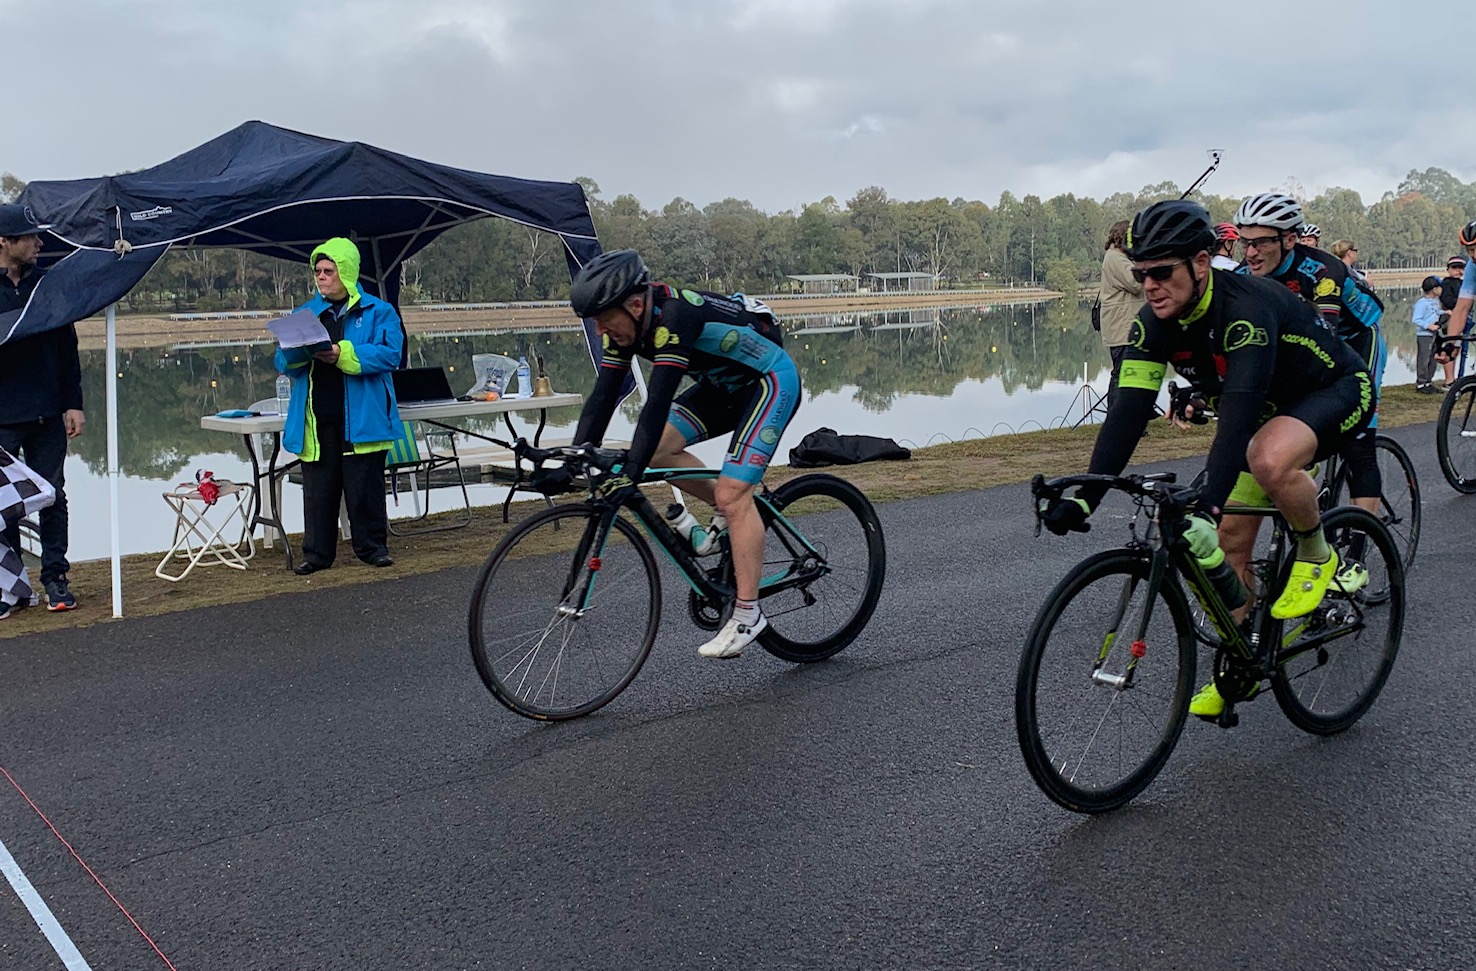 Metropolitan Championships @ Penrith Lakes @ 6 July - At the M6 finish line and Matt Coy may have already taken the M6 Bronze Medal but close on his heels was the BiciSport sprint train of Graham Cockerton, Peter Budd & Eric Dole